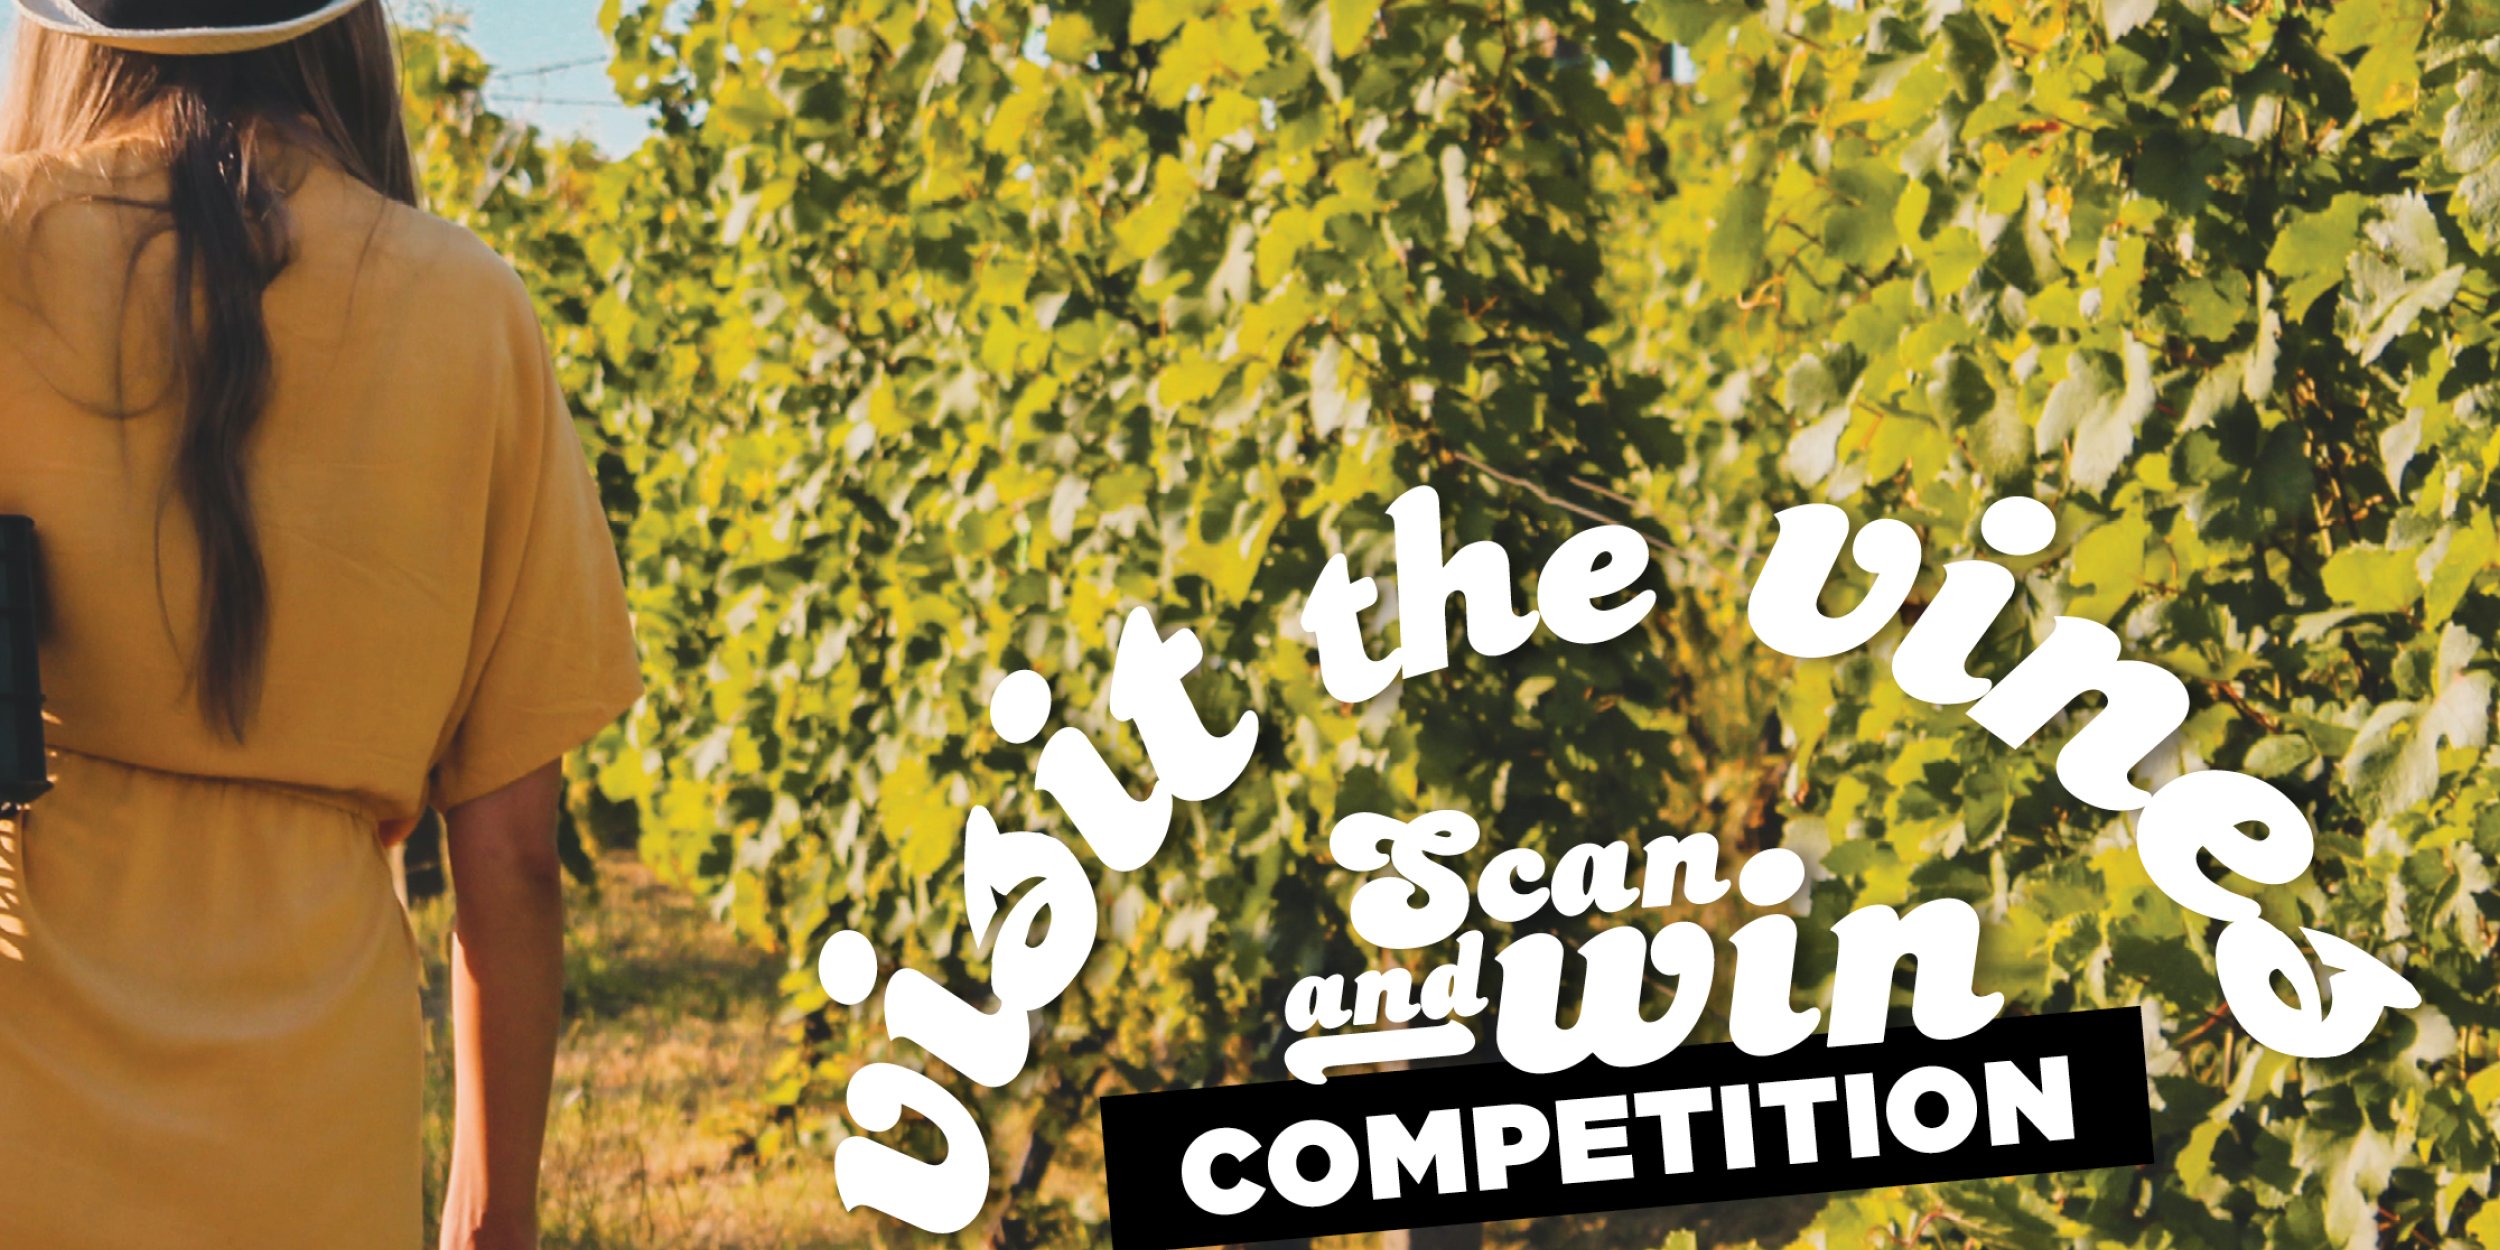 Visit the Vines - Scan & Win